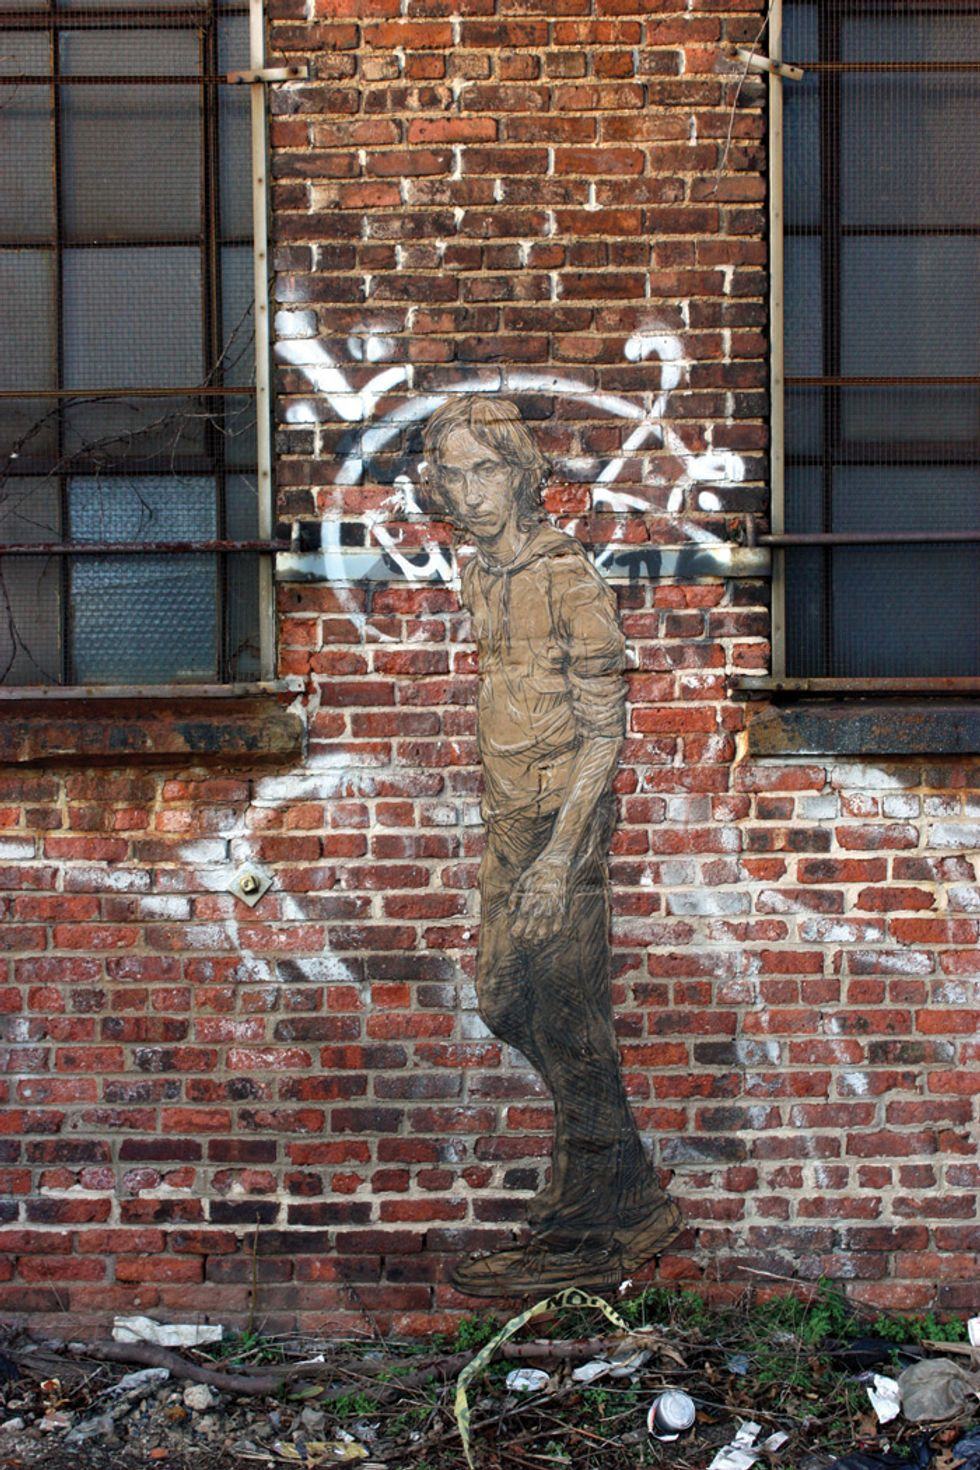 At 22, RJ Rushmore Has Become One of Street Art's Premier Chroniclers